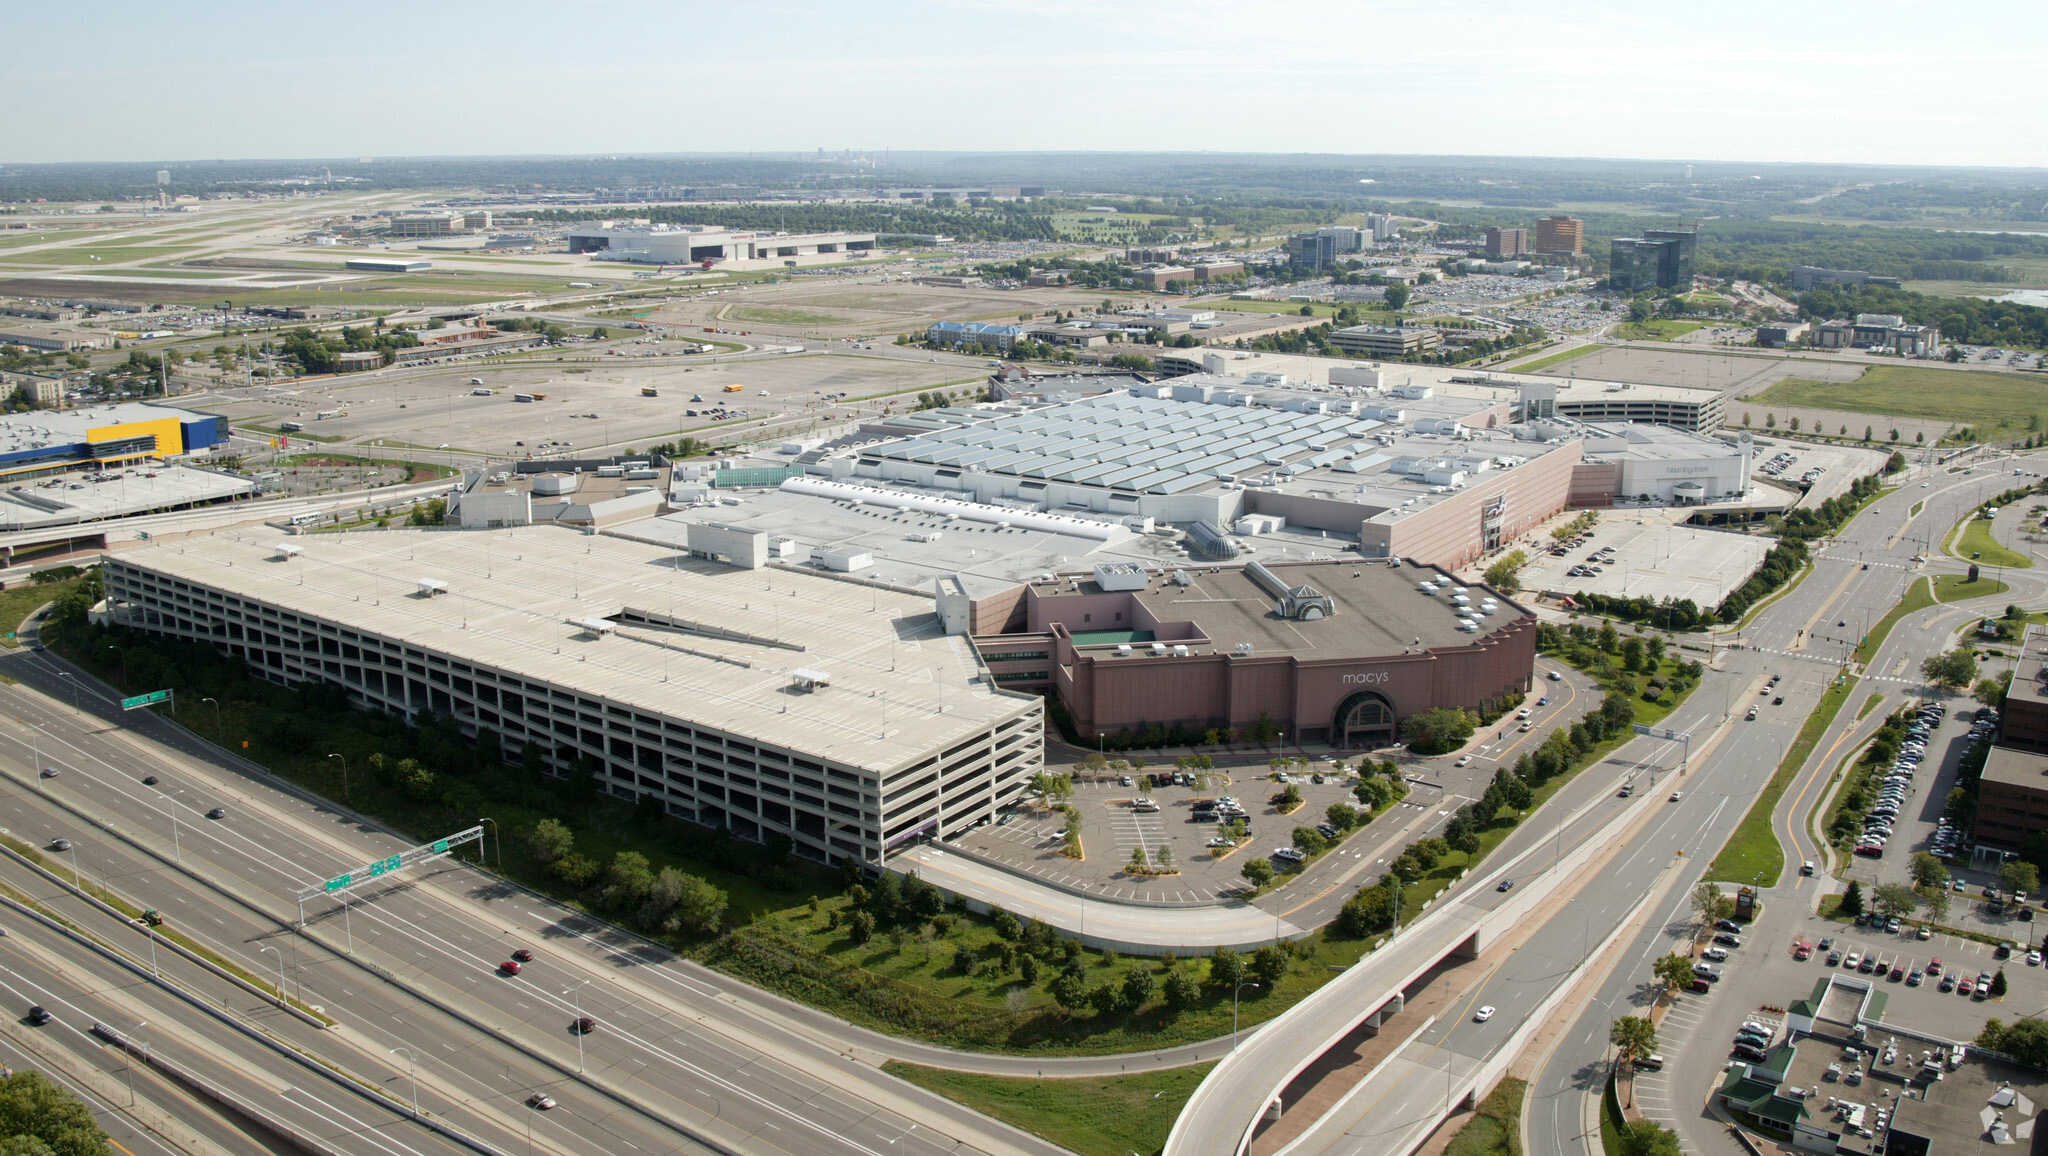 Mall Of America Owner Falls Behind On Mortgage Payments Costar